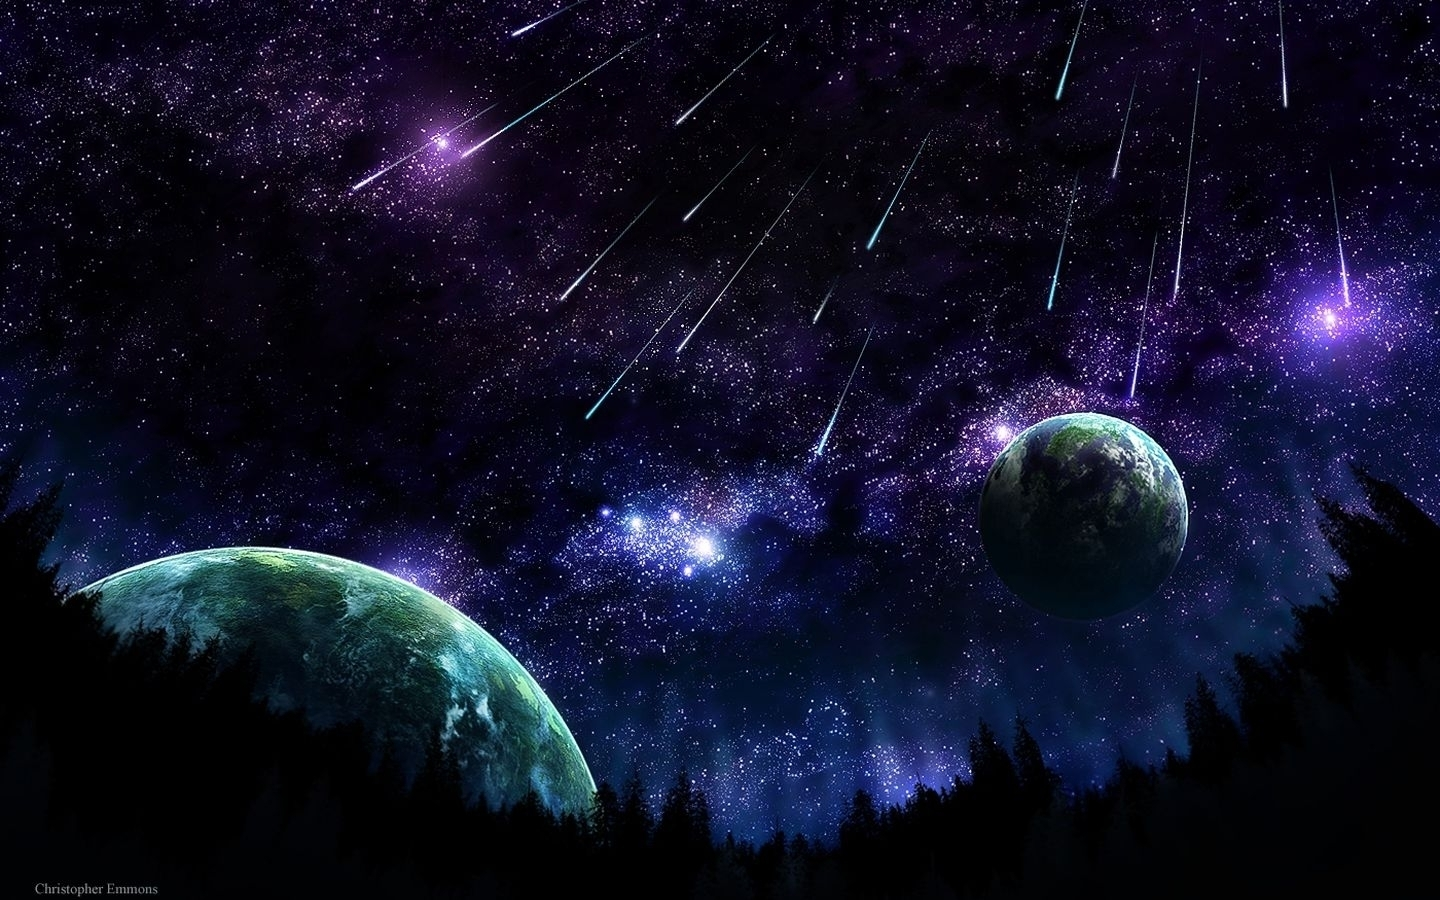 1440x900 - Space Wallpaper and Screensavers 4